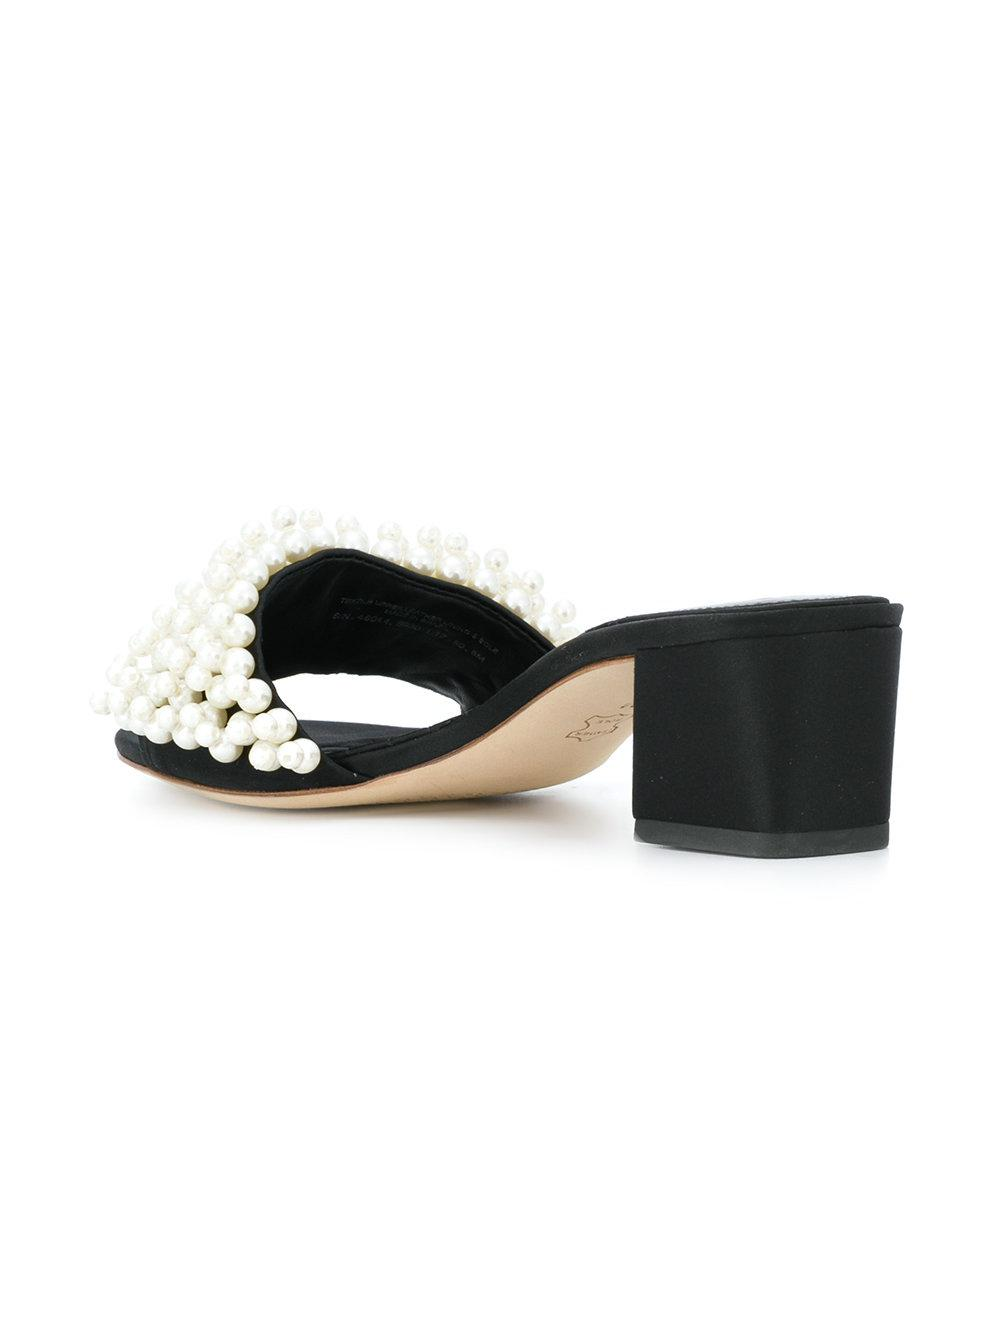 897303f3cf102 Lyst - Tory Burch Faux-pearl Slide Sandals in Black